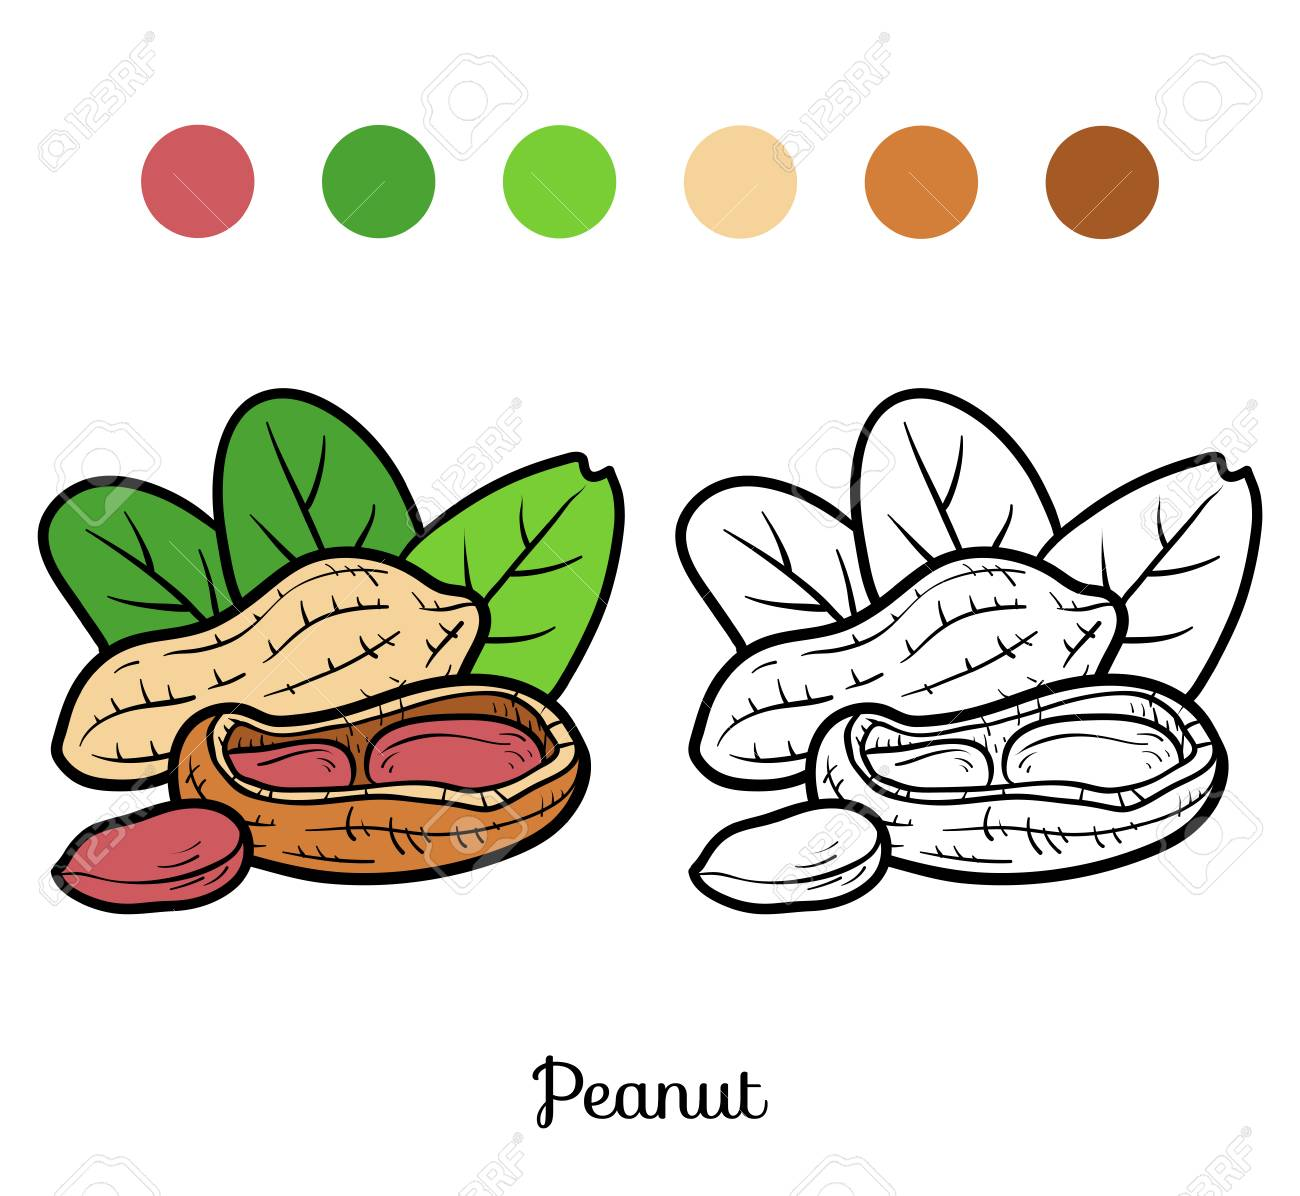 coloring book for children peanut royalty free cliparts vectors